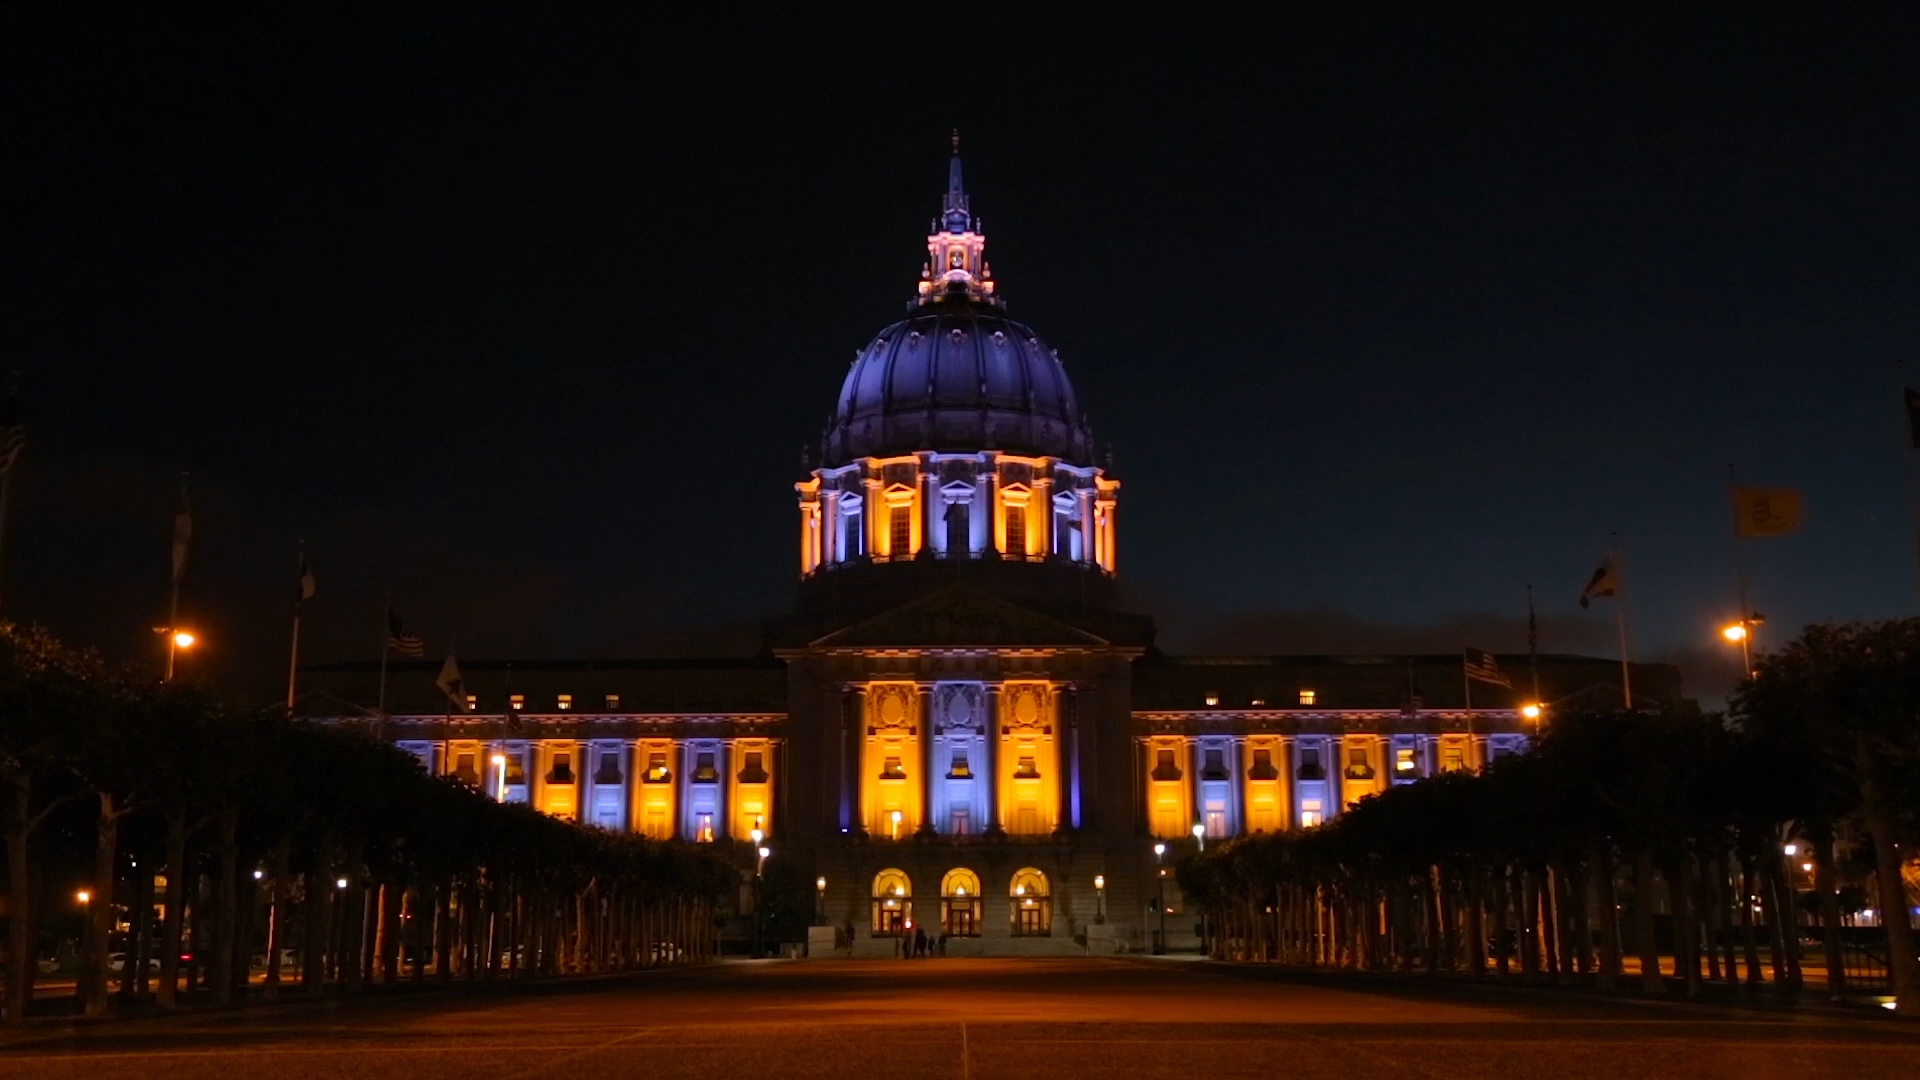 San Francisco City Hall with purple and gold lights